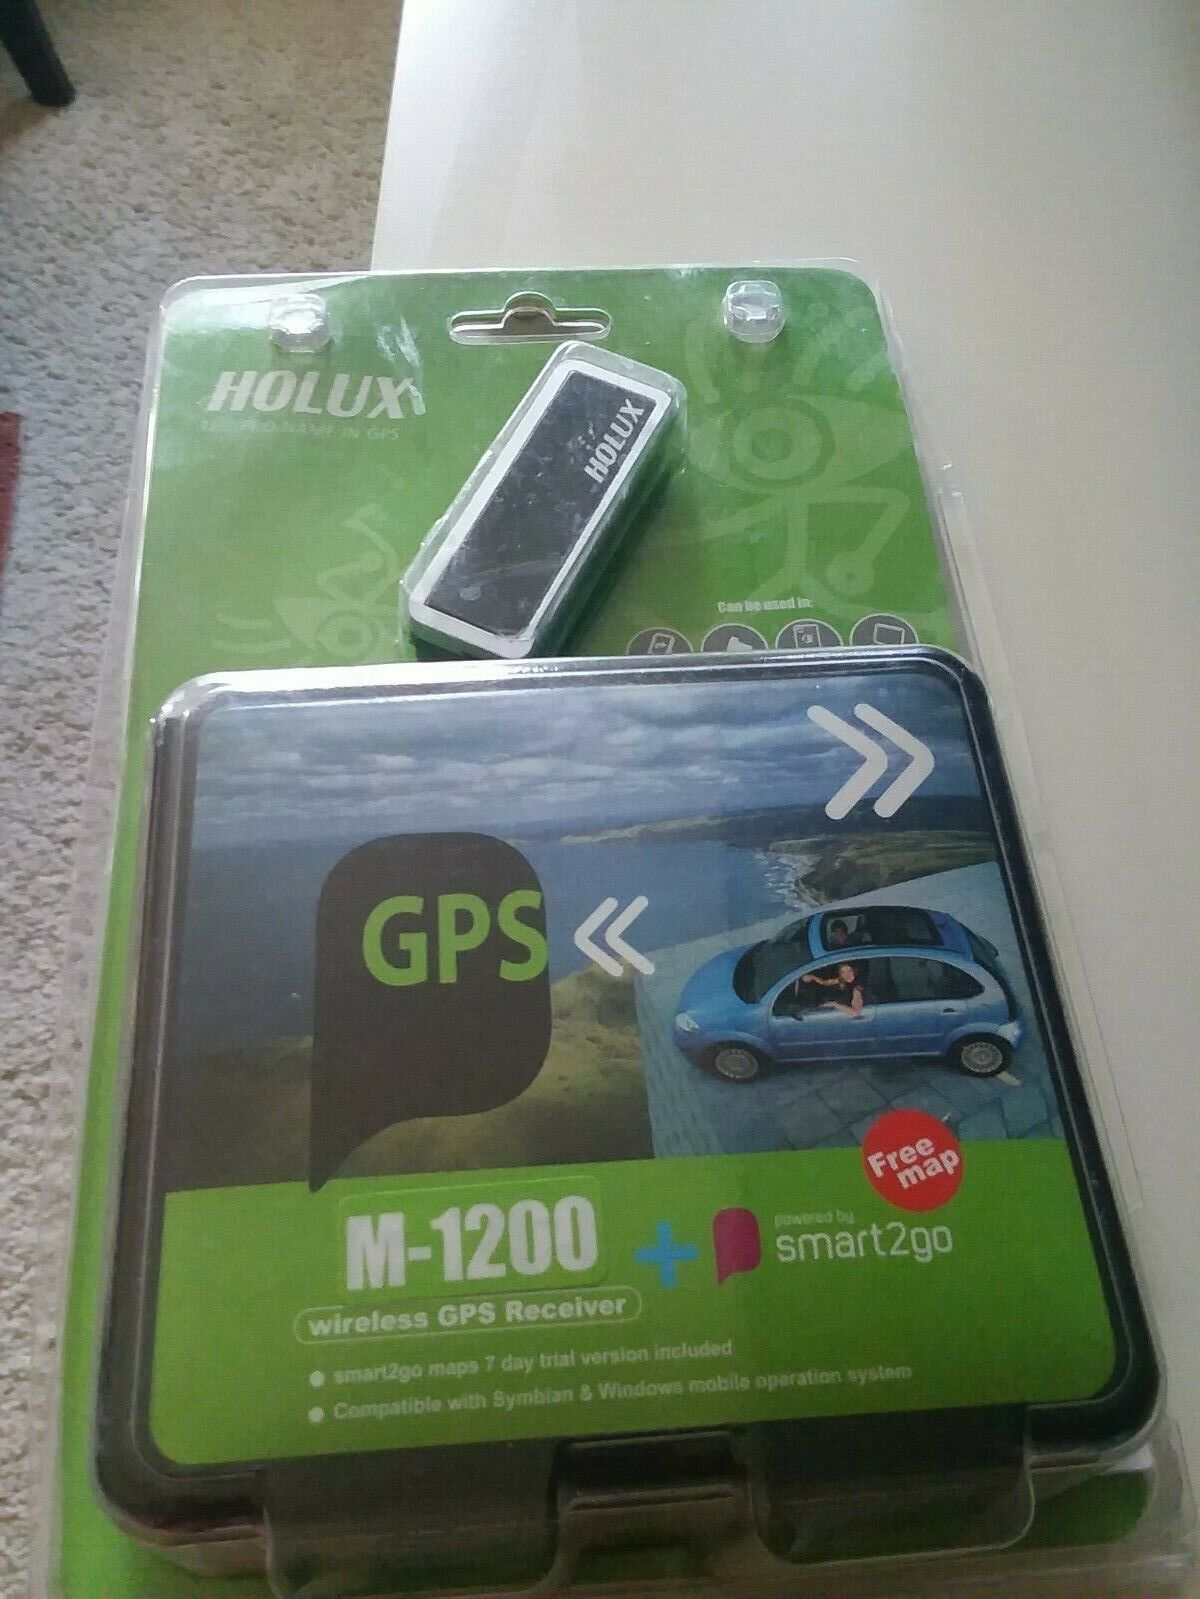 HOLUX  GPS M-1200 GPS RECEIVER, NEW OPEN PACK